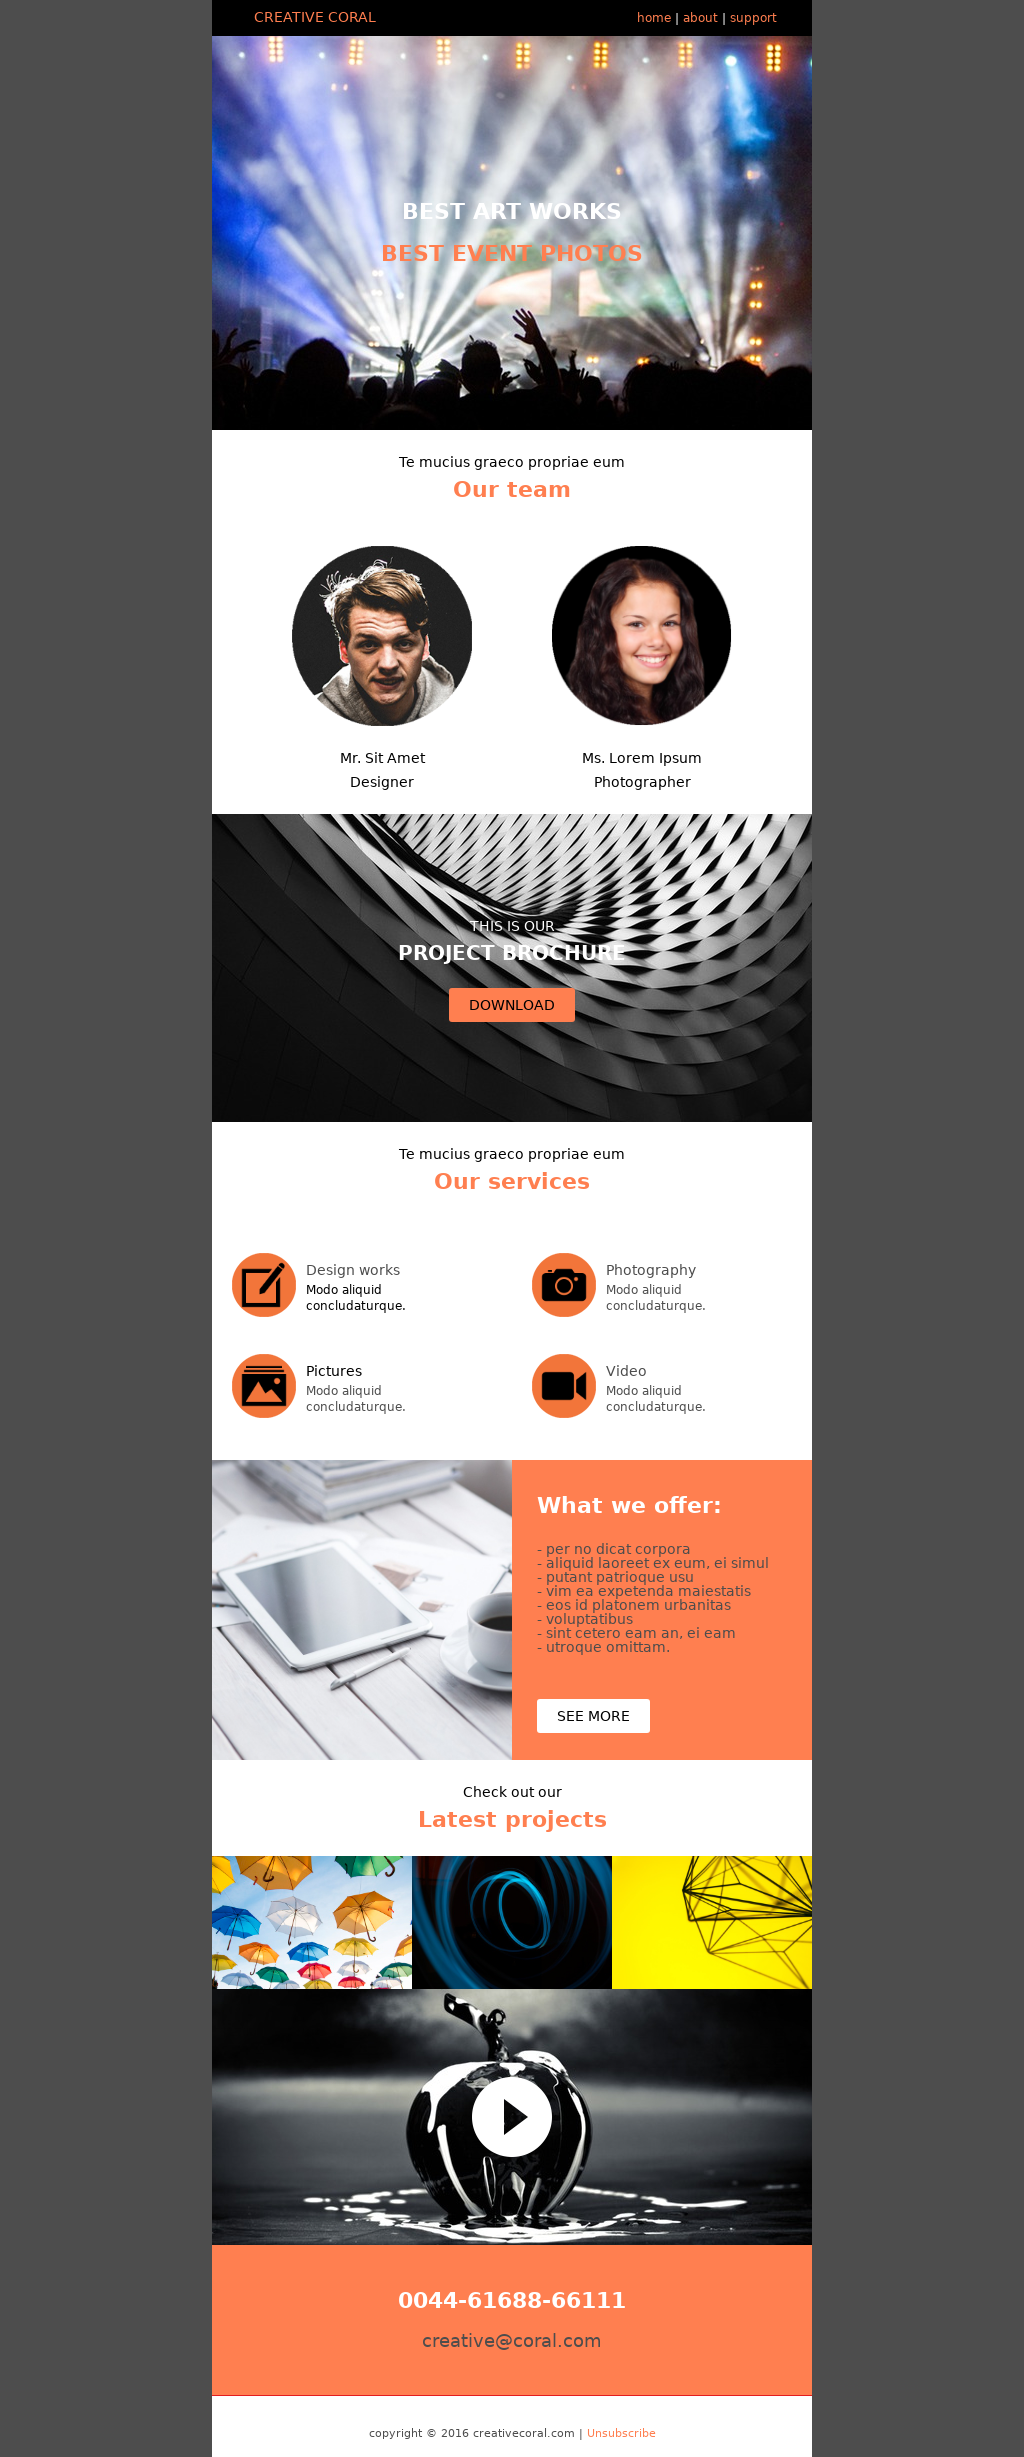 Entertainment and events focused email templates used for agencies that offer more services for their clients